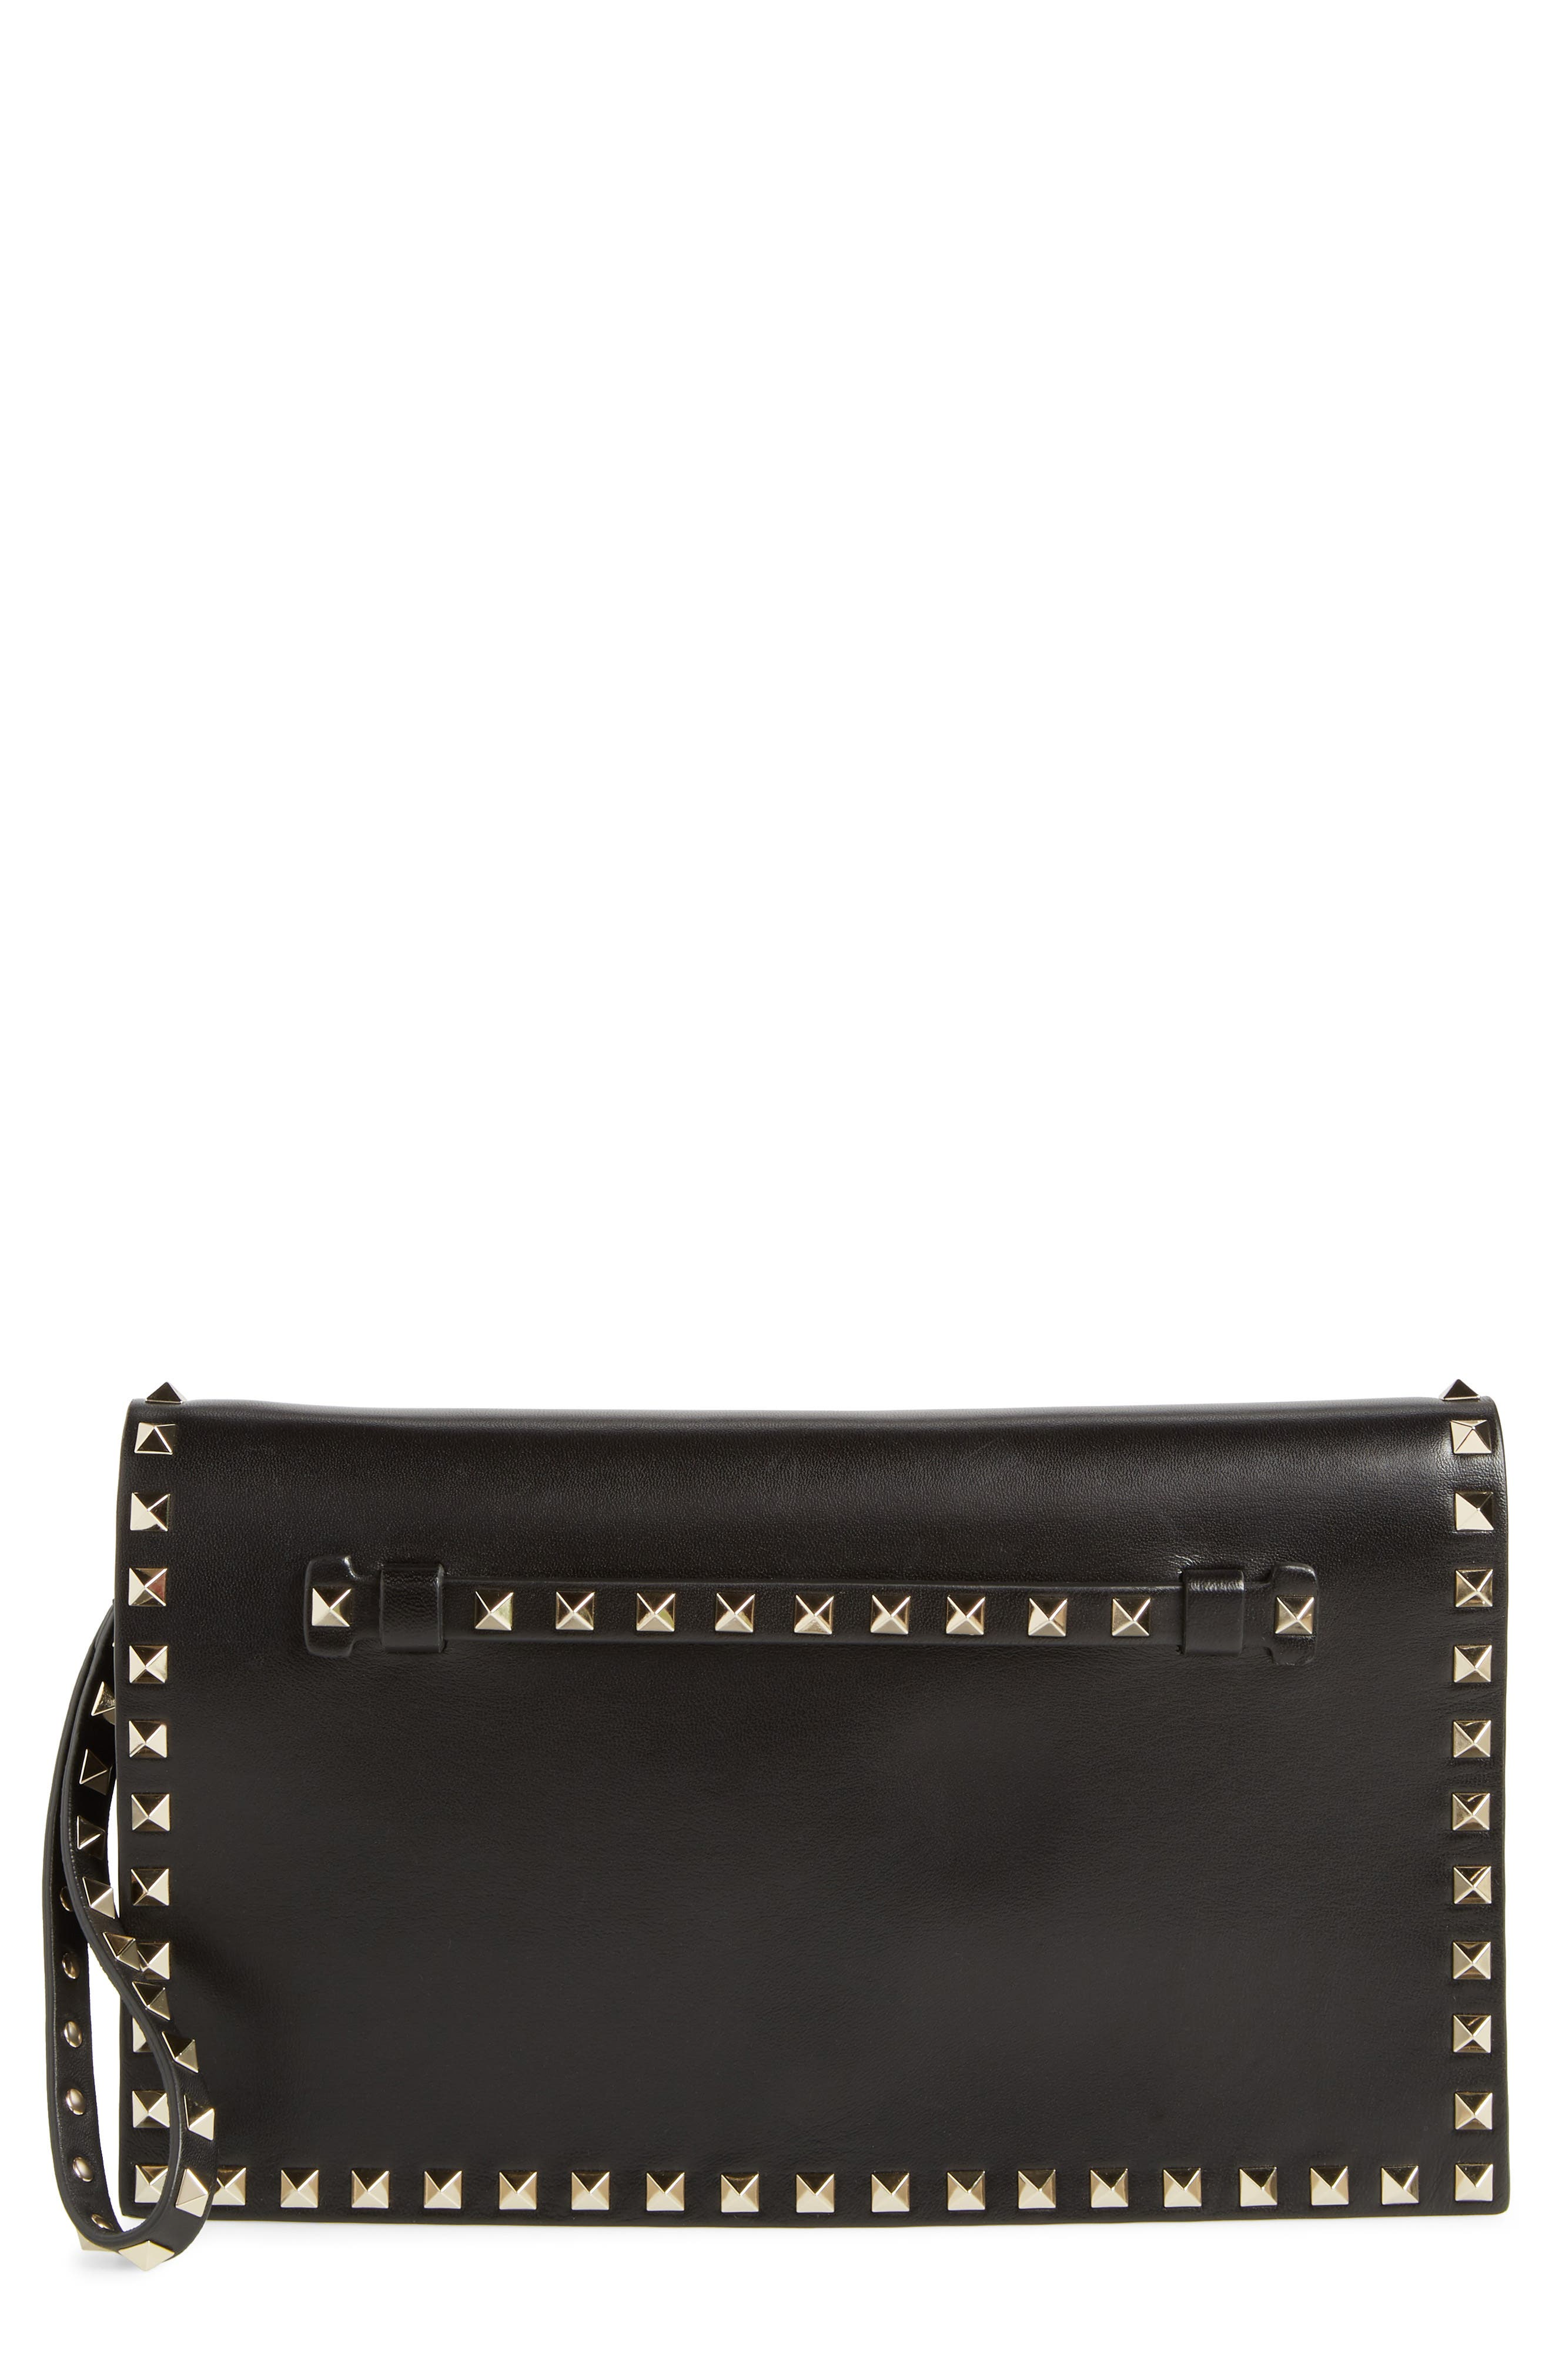 Rockstud Calfskin Leather Clutch - Black